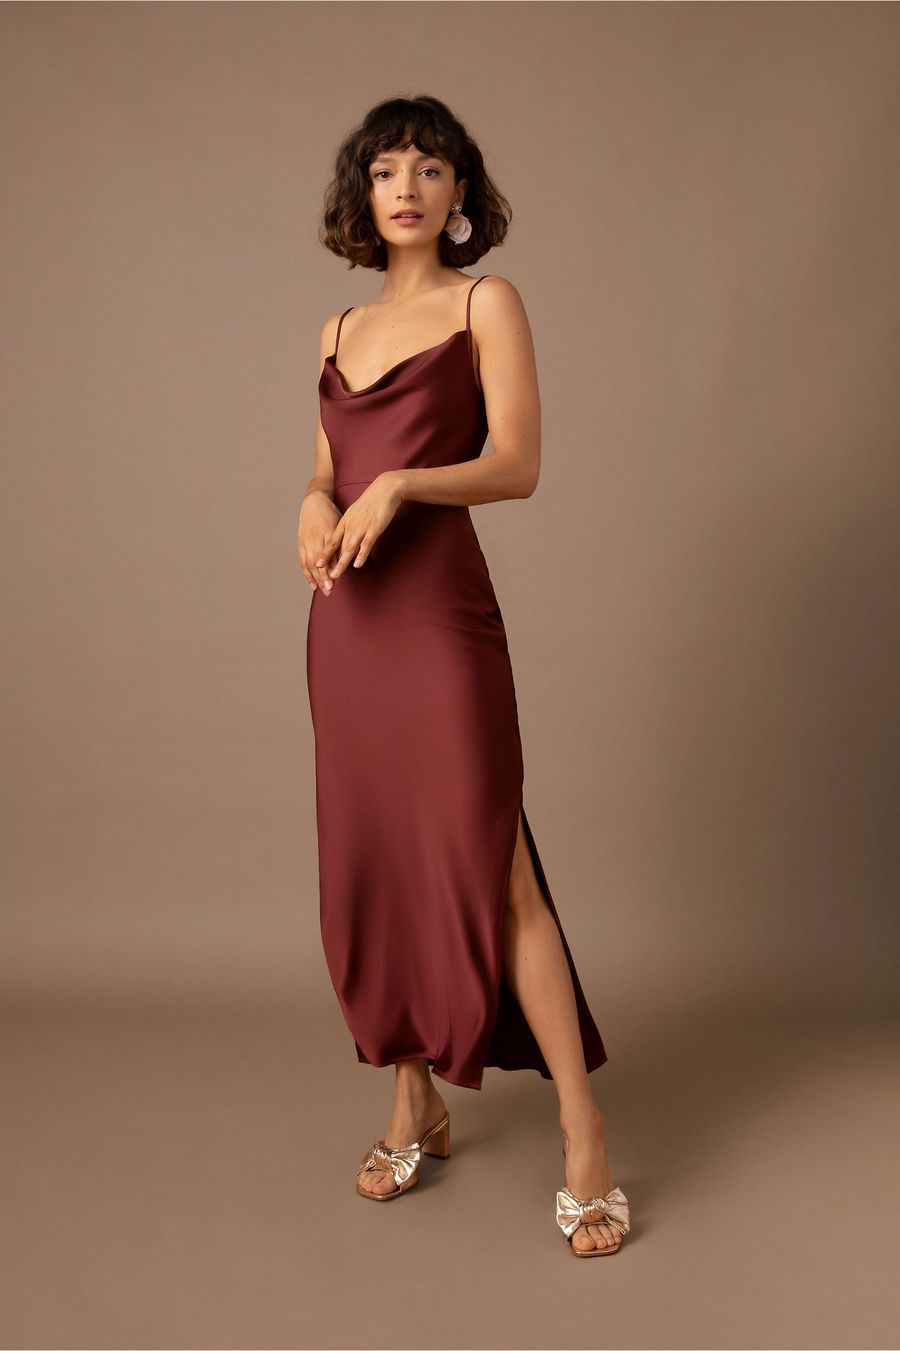 20 Stunning Cocktail Dresses For Wedding Guests Best Cocktail Dresses Cocktail Dress Wedding Guest Cocktail Dress Wedding [ 1351 x 900 Pixel ]